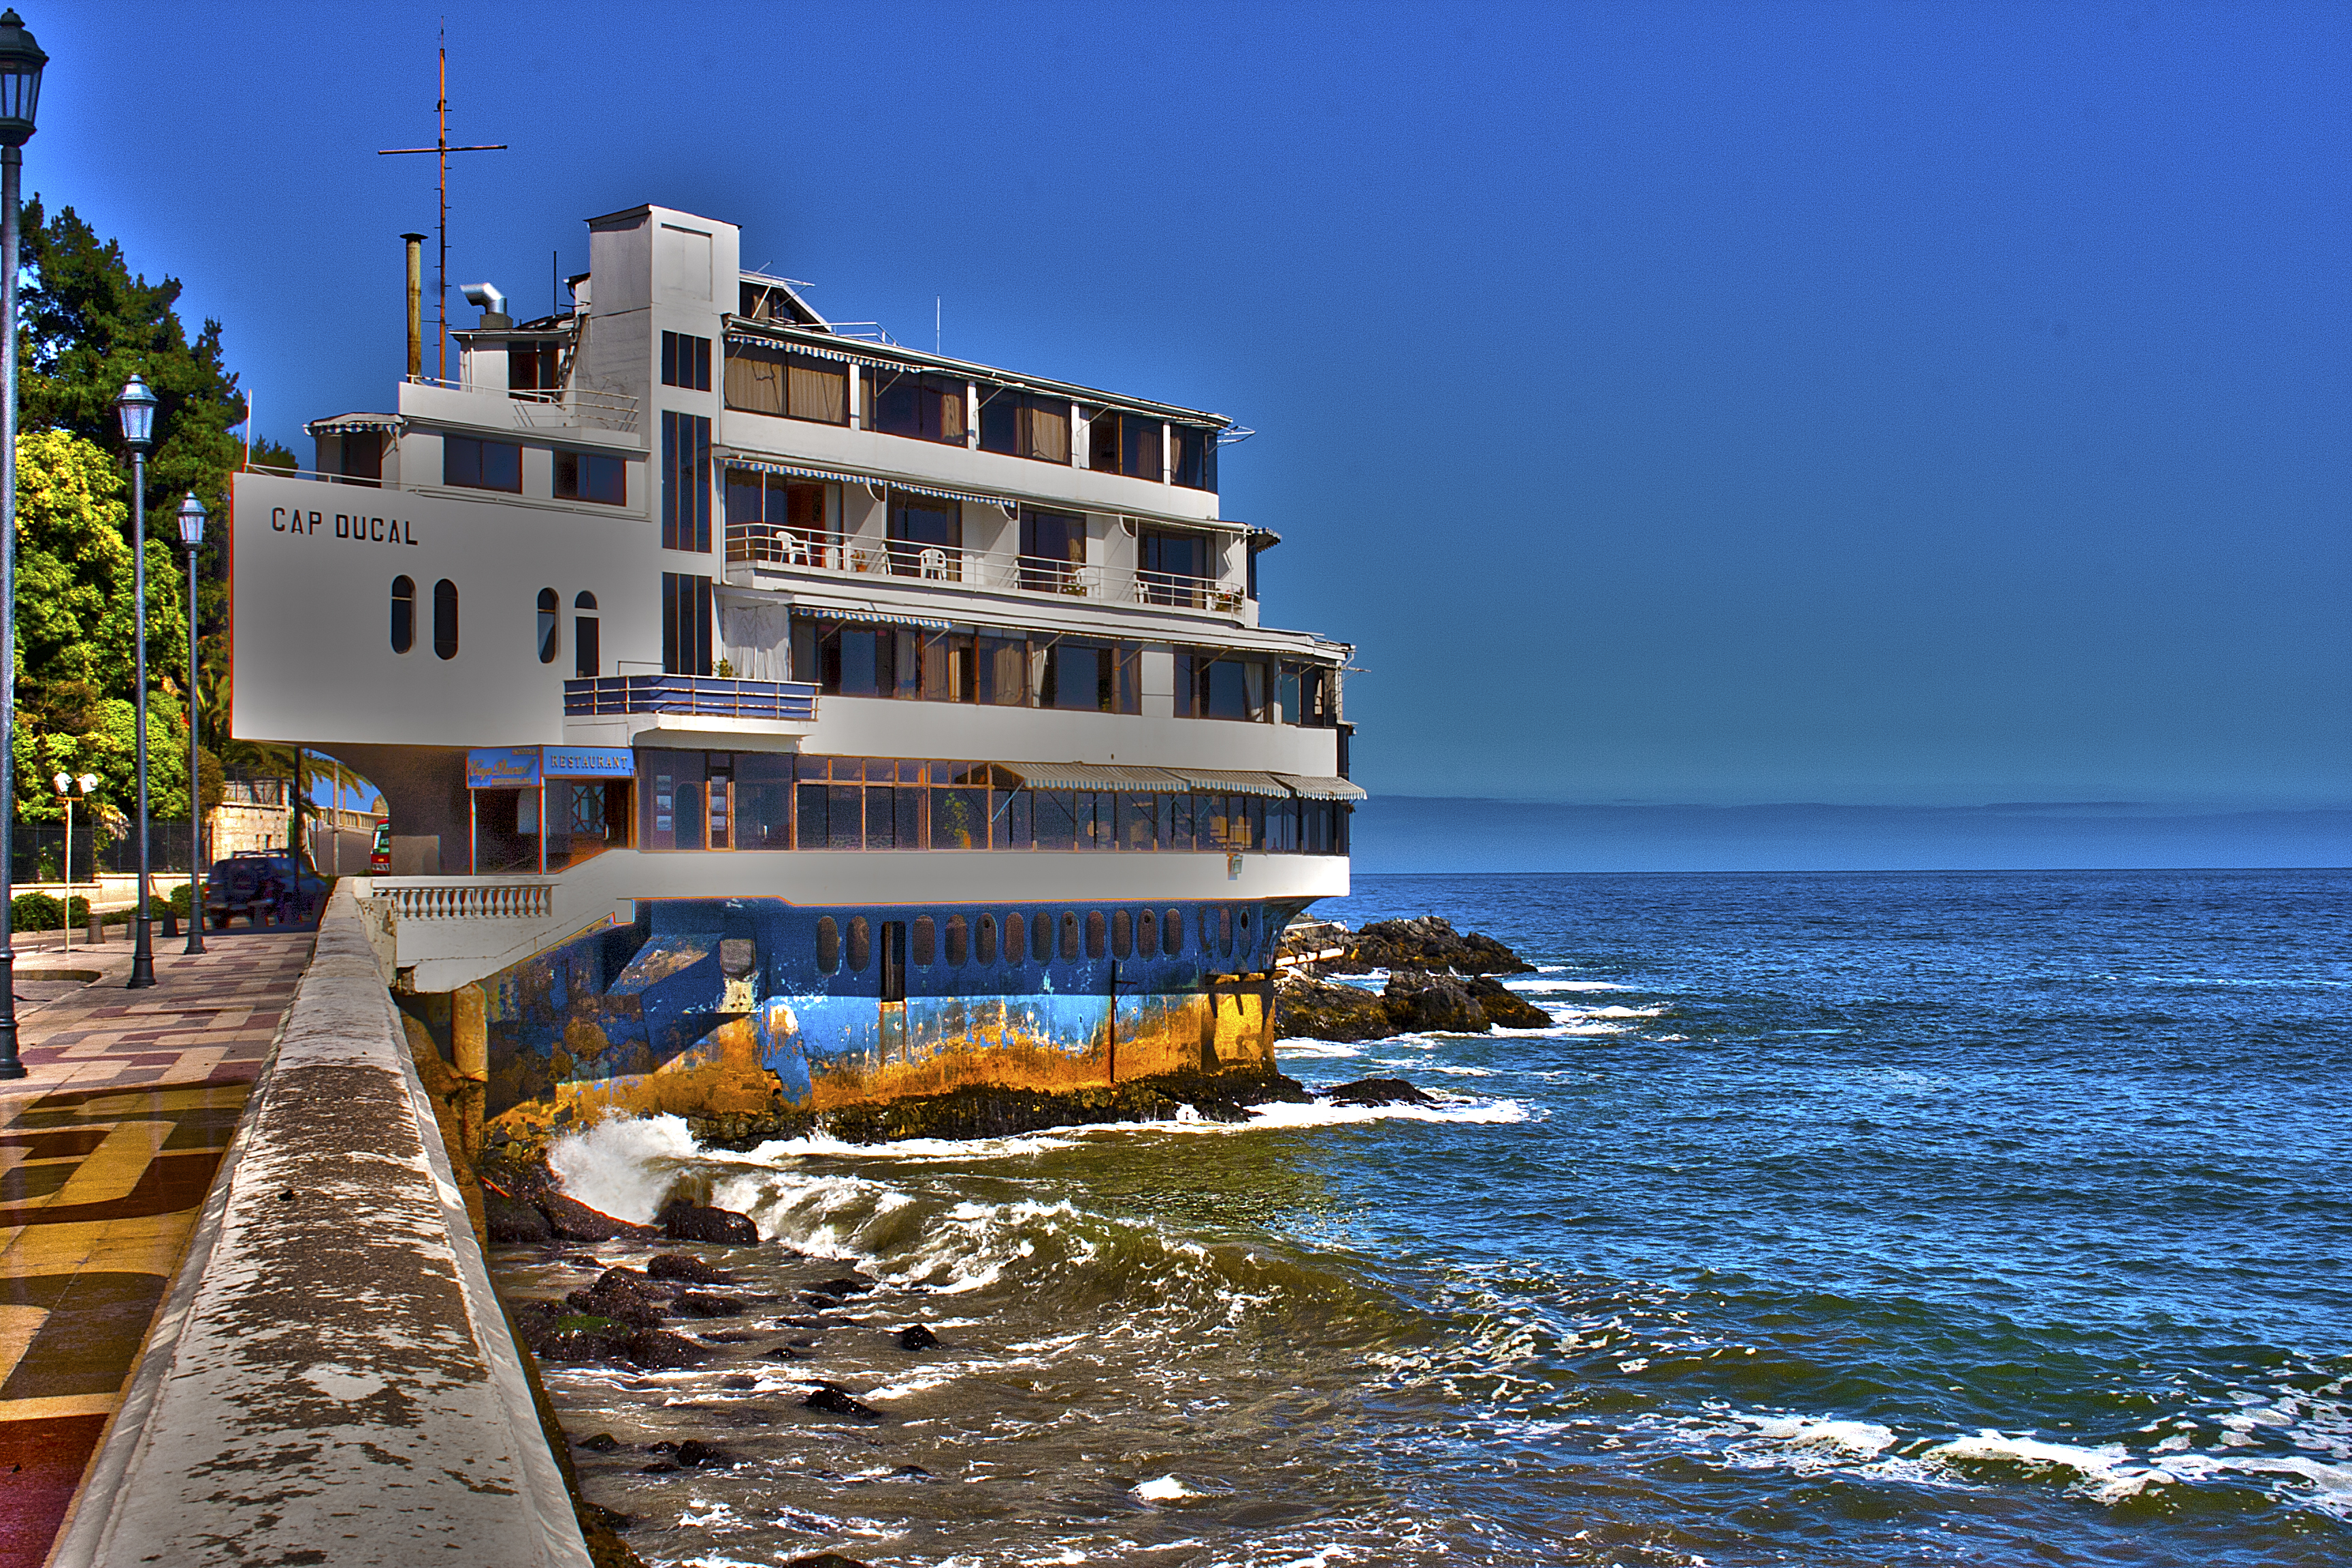 View of Cap Ducal Hotel – HDR